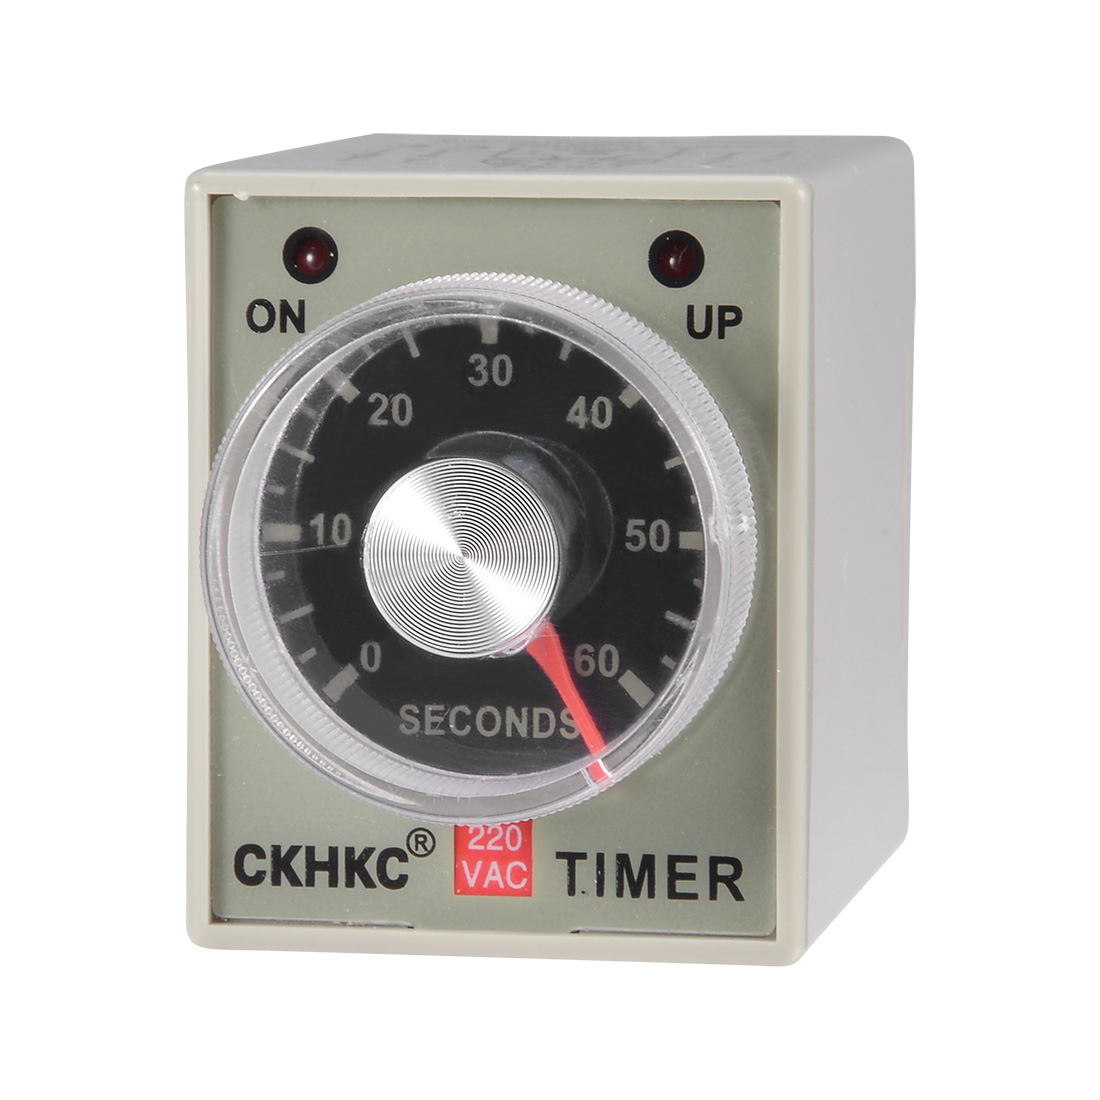 AC220V 60s 8 Terminals Range Adjustable Delay Timer Time Relay AH3-3